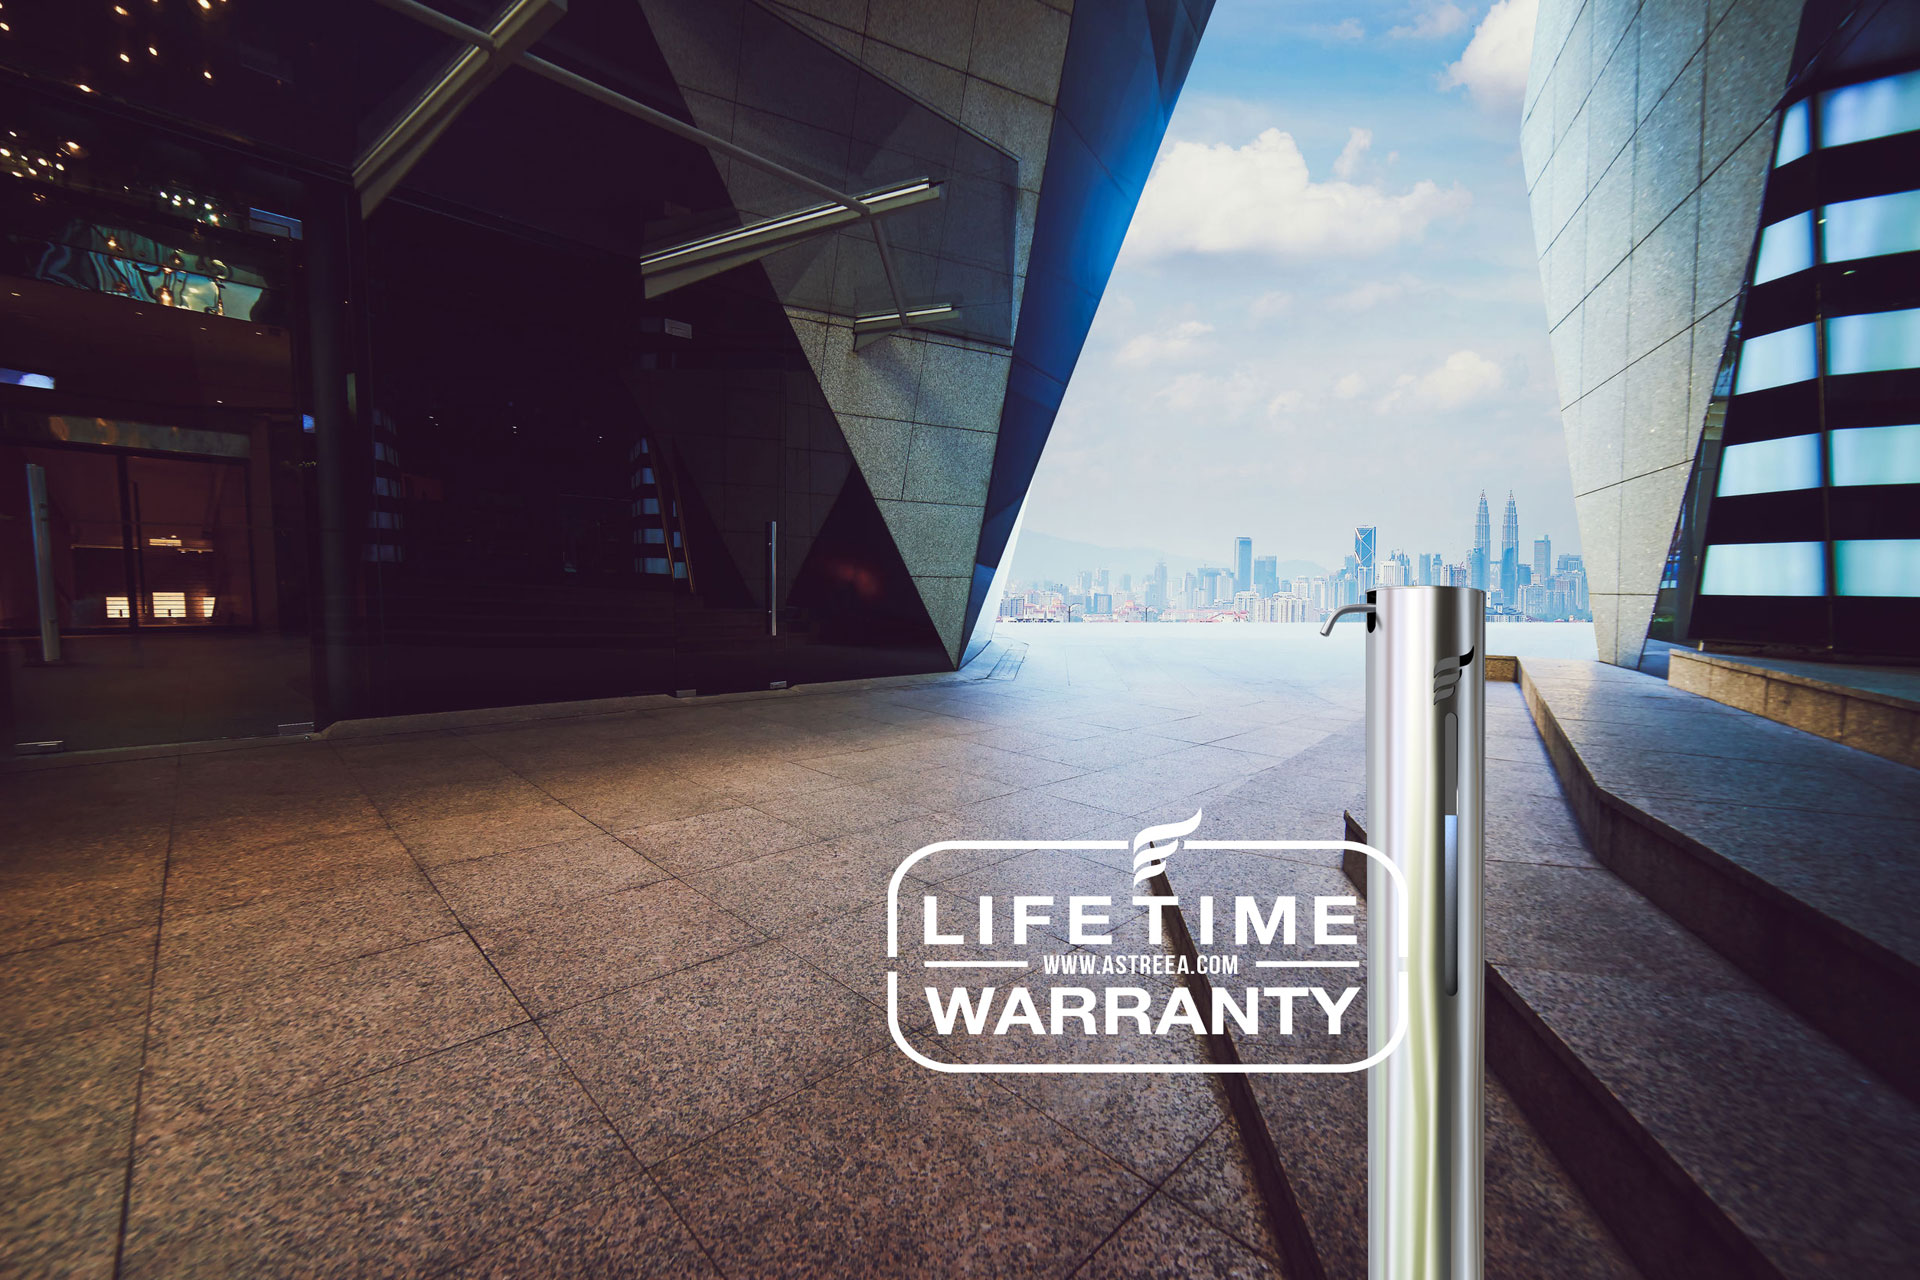 Lifetime Warranty. Because we trust our stainless steel. Our technology. Our people.